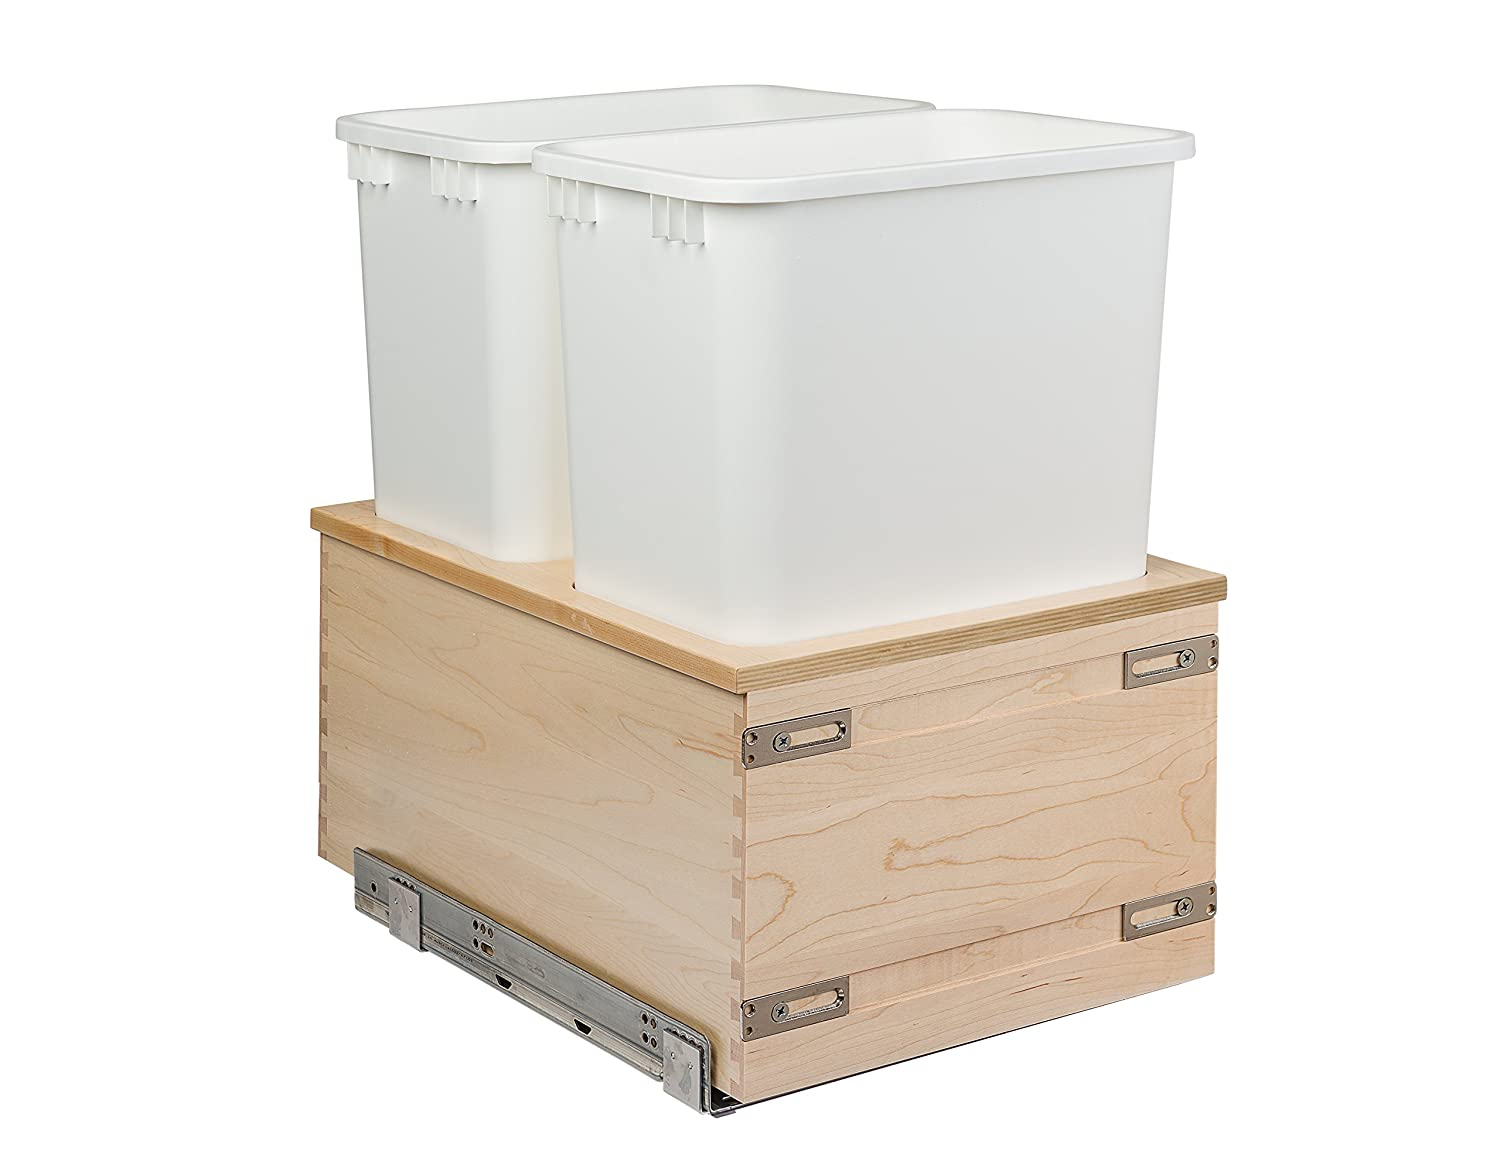 Century Components CASBM14PF Kitchen Pull Out Waste Bin Container - 34 Qt White Double - Baltic Birch - Blum Soft-Close 170 lb. MOVENTO 769 Slides, 14-7/8